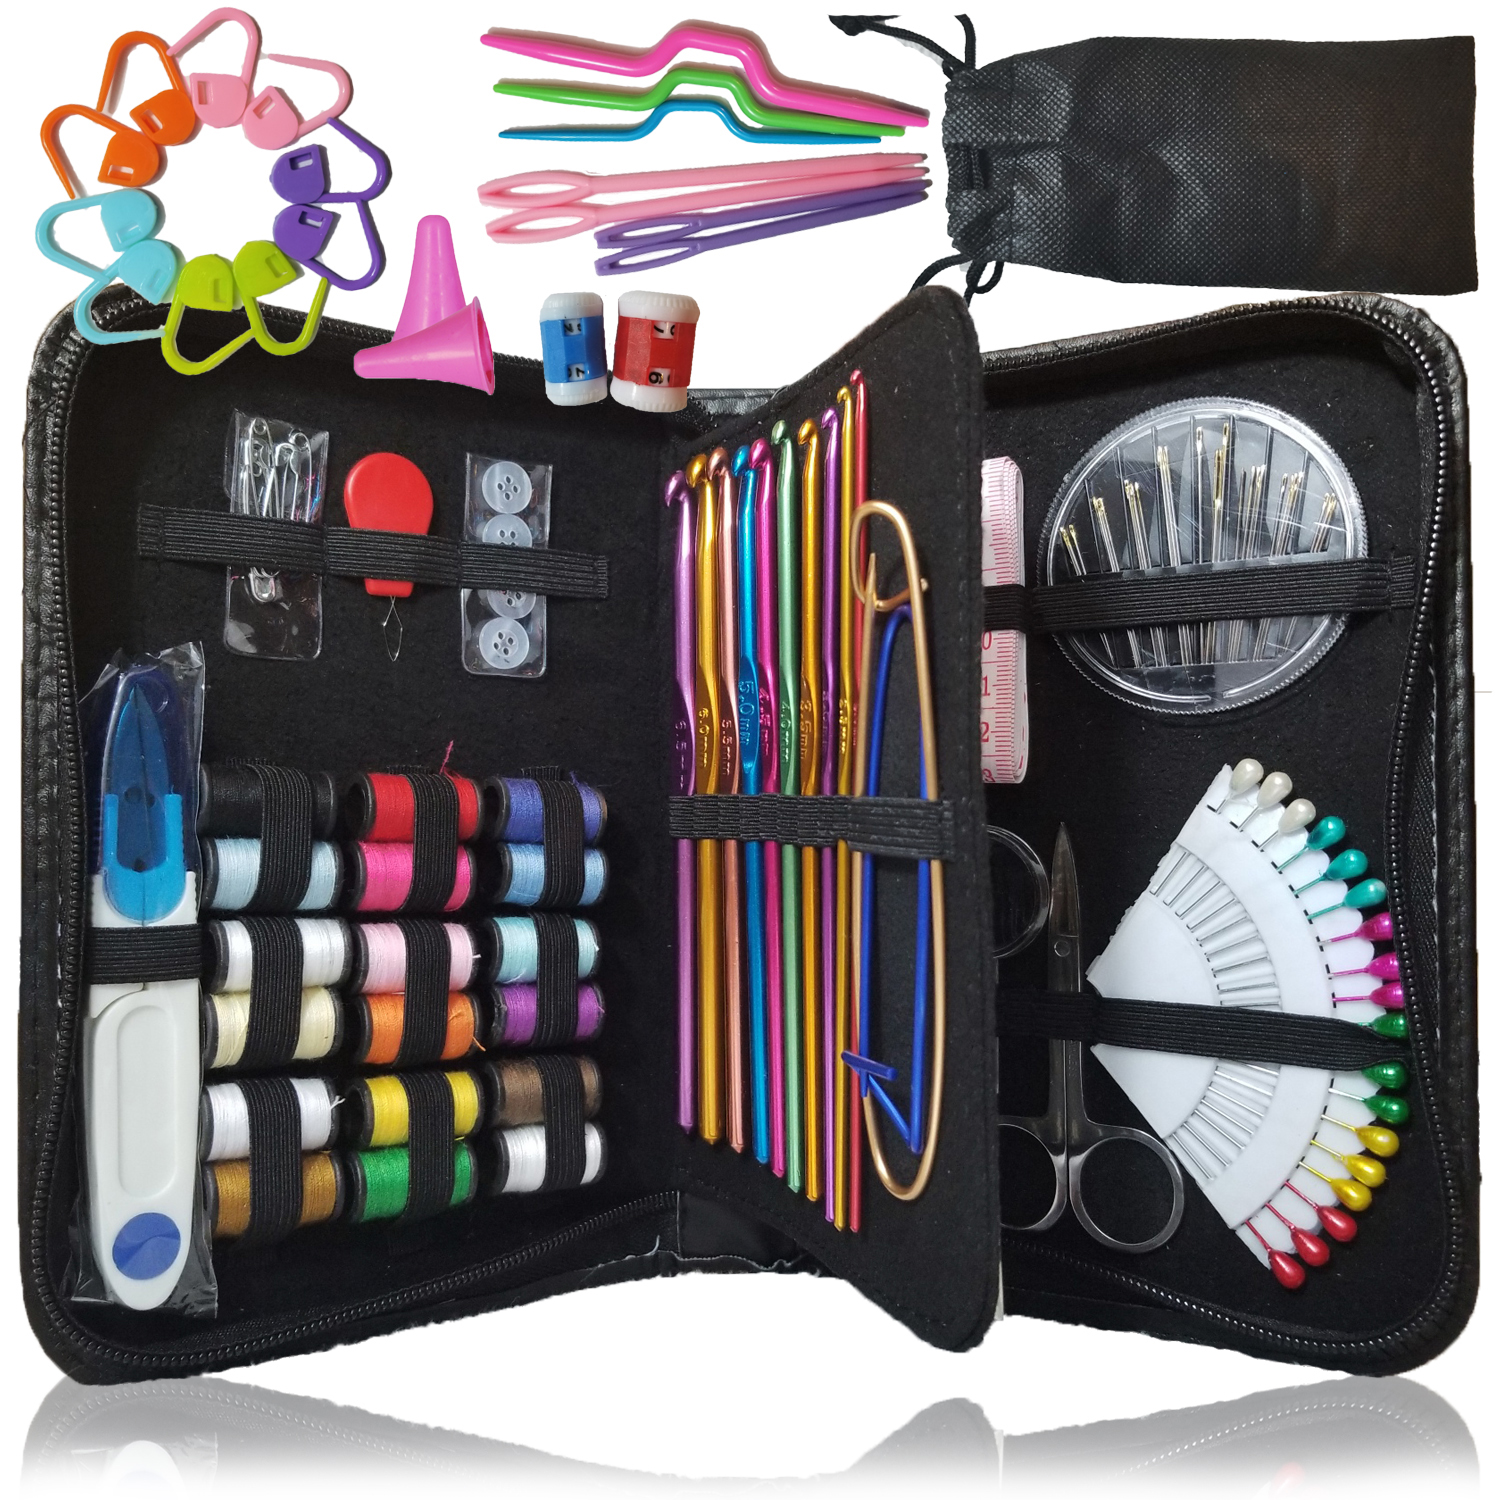 Sewing kit & Crochet kit, DIY Over 100 Premium Sewing and crocheting Supplies, FREE BONUS Knitting accessories - Travel sewing kit, for beginners, emergency, kids, dorm, camping and Home